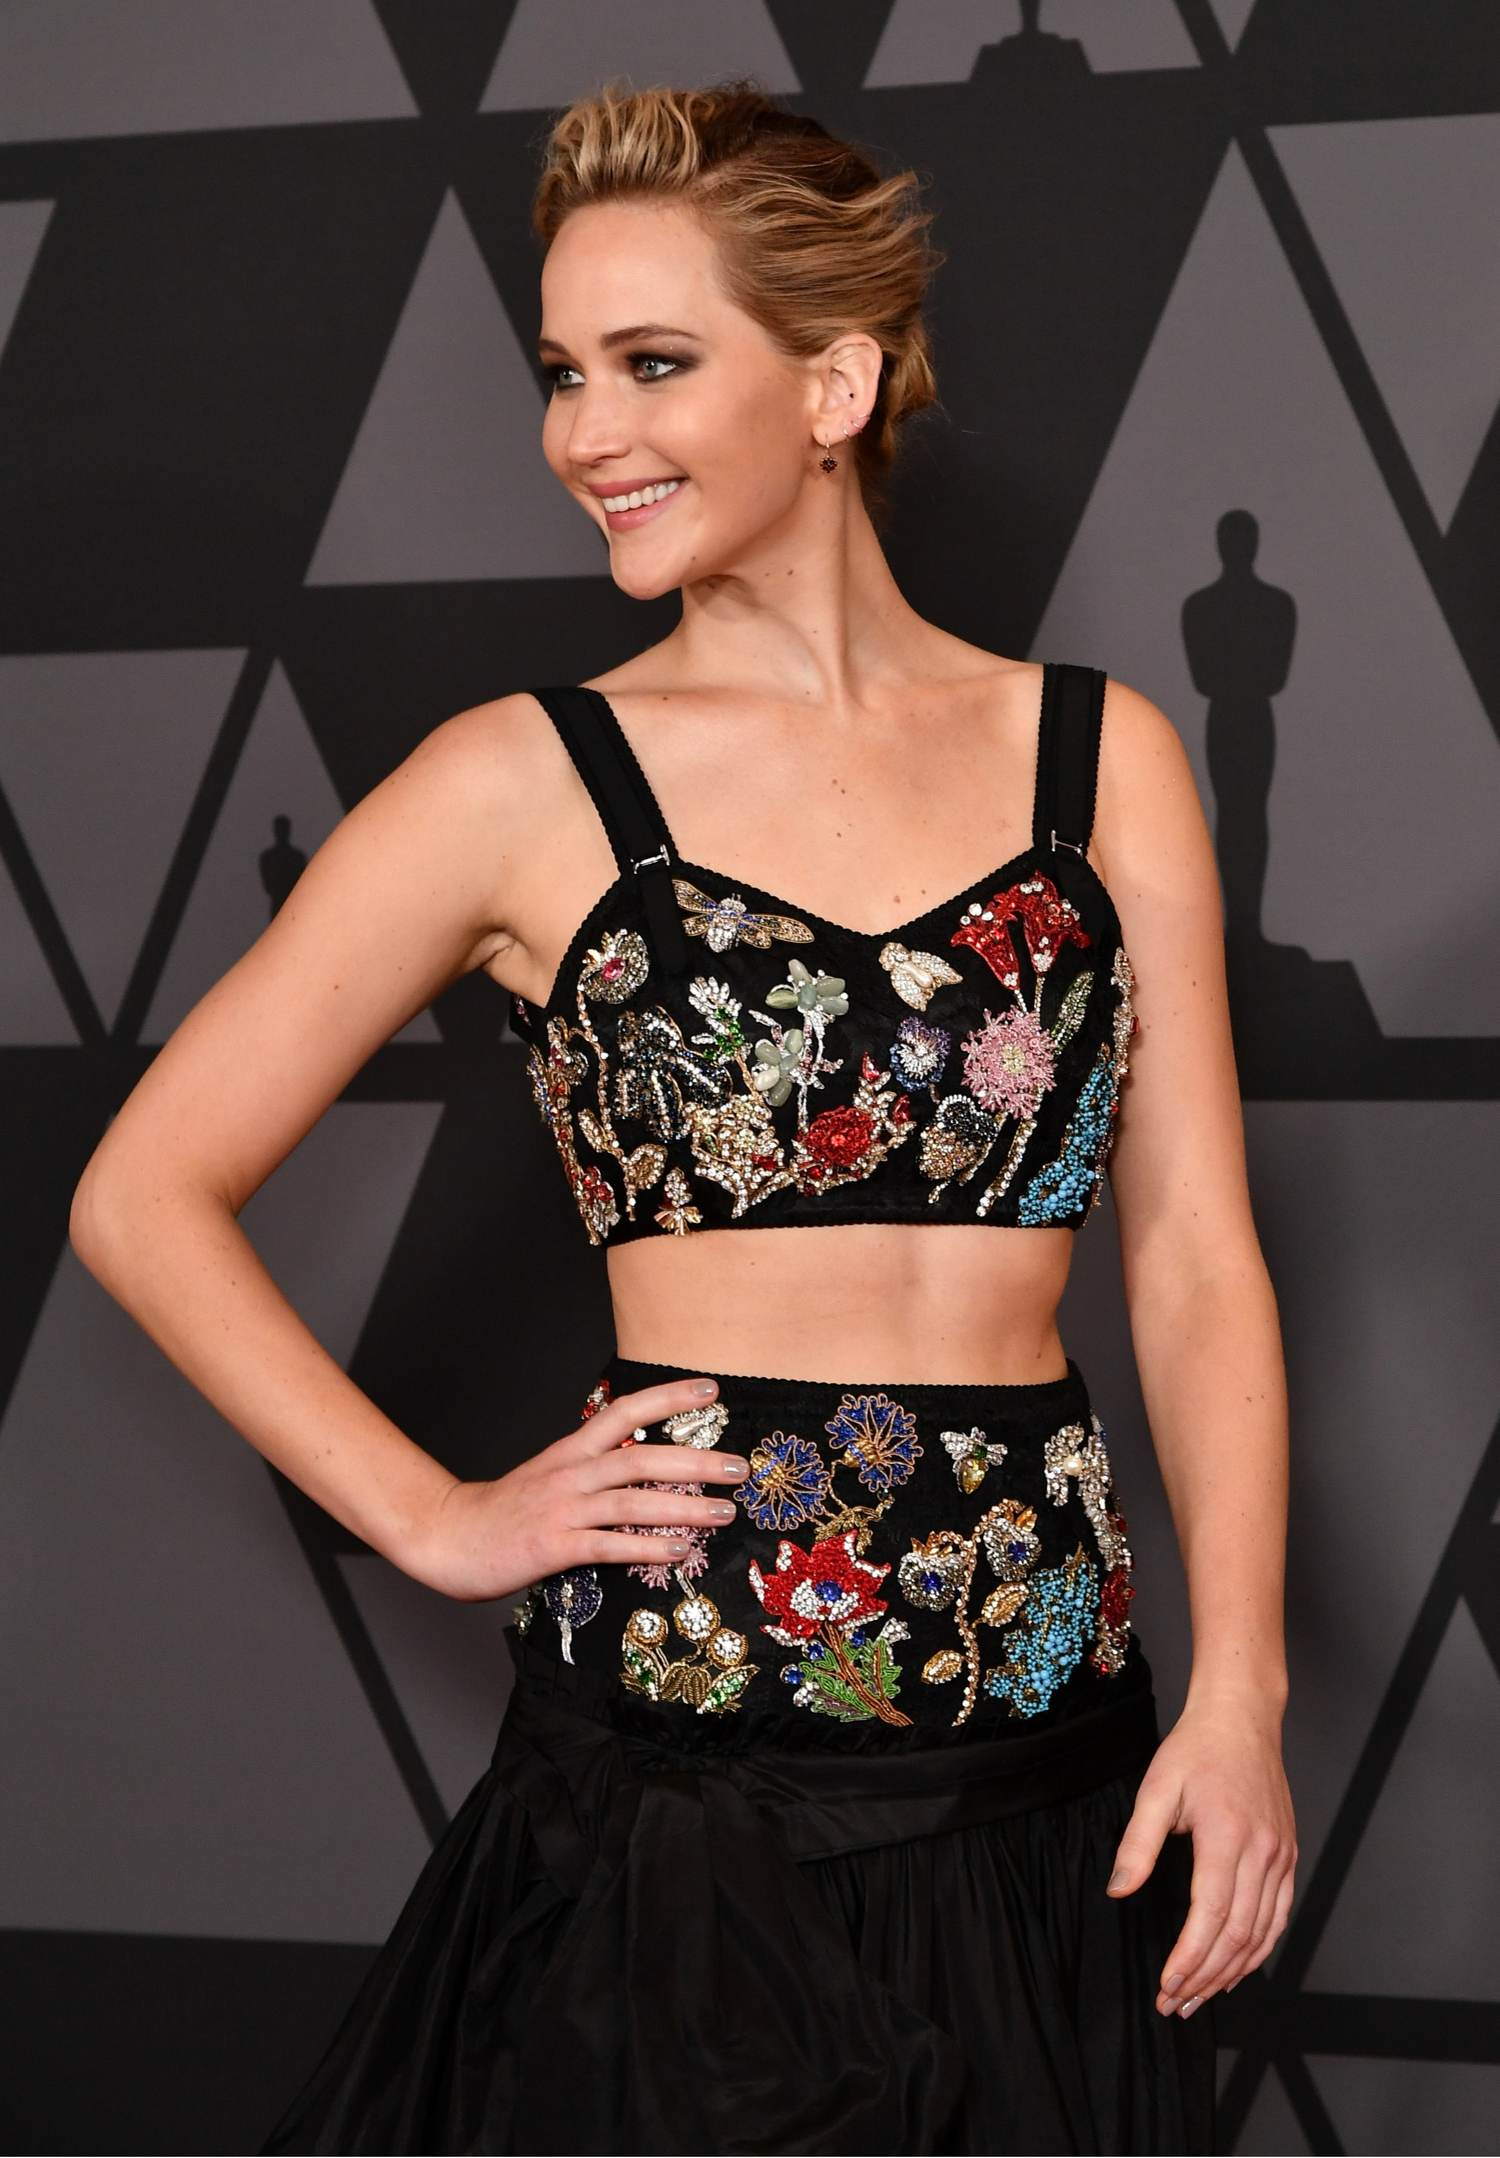 http://jenniferlawrencedaily.com/gallery/albums/userpics/10001/Academy_of_Motion_Picture_Arts_and_Sciences__9th_Annual_Governors_Awards_in_Hollywood-32.jpg